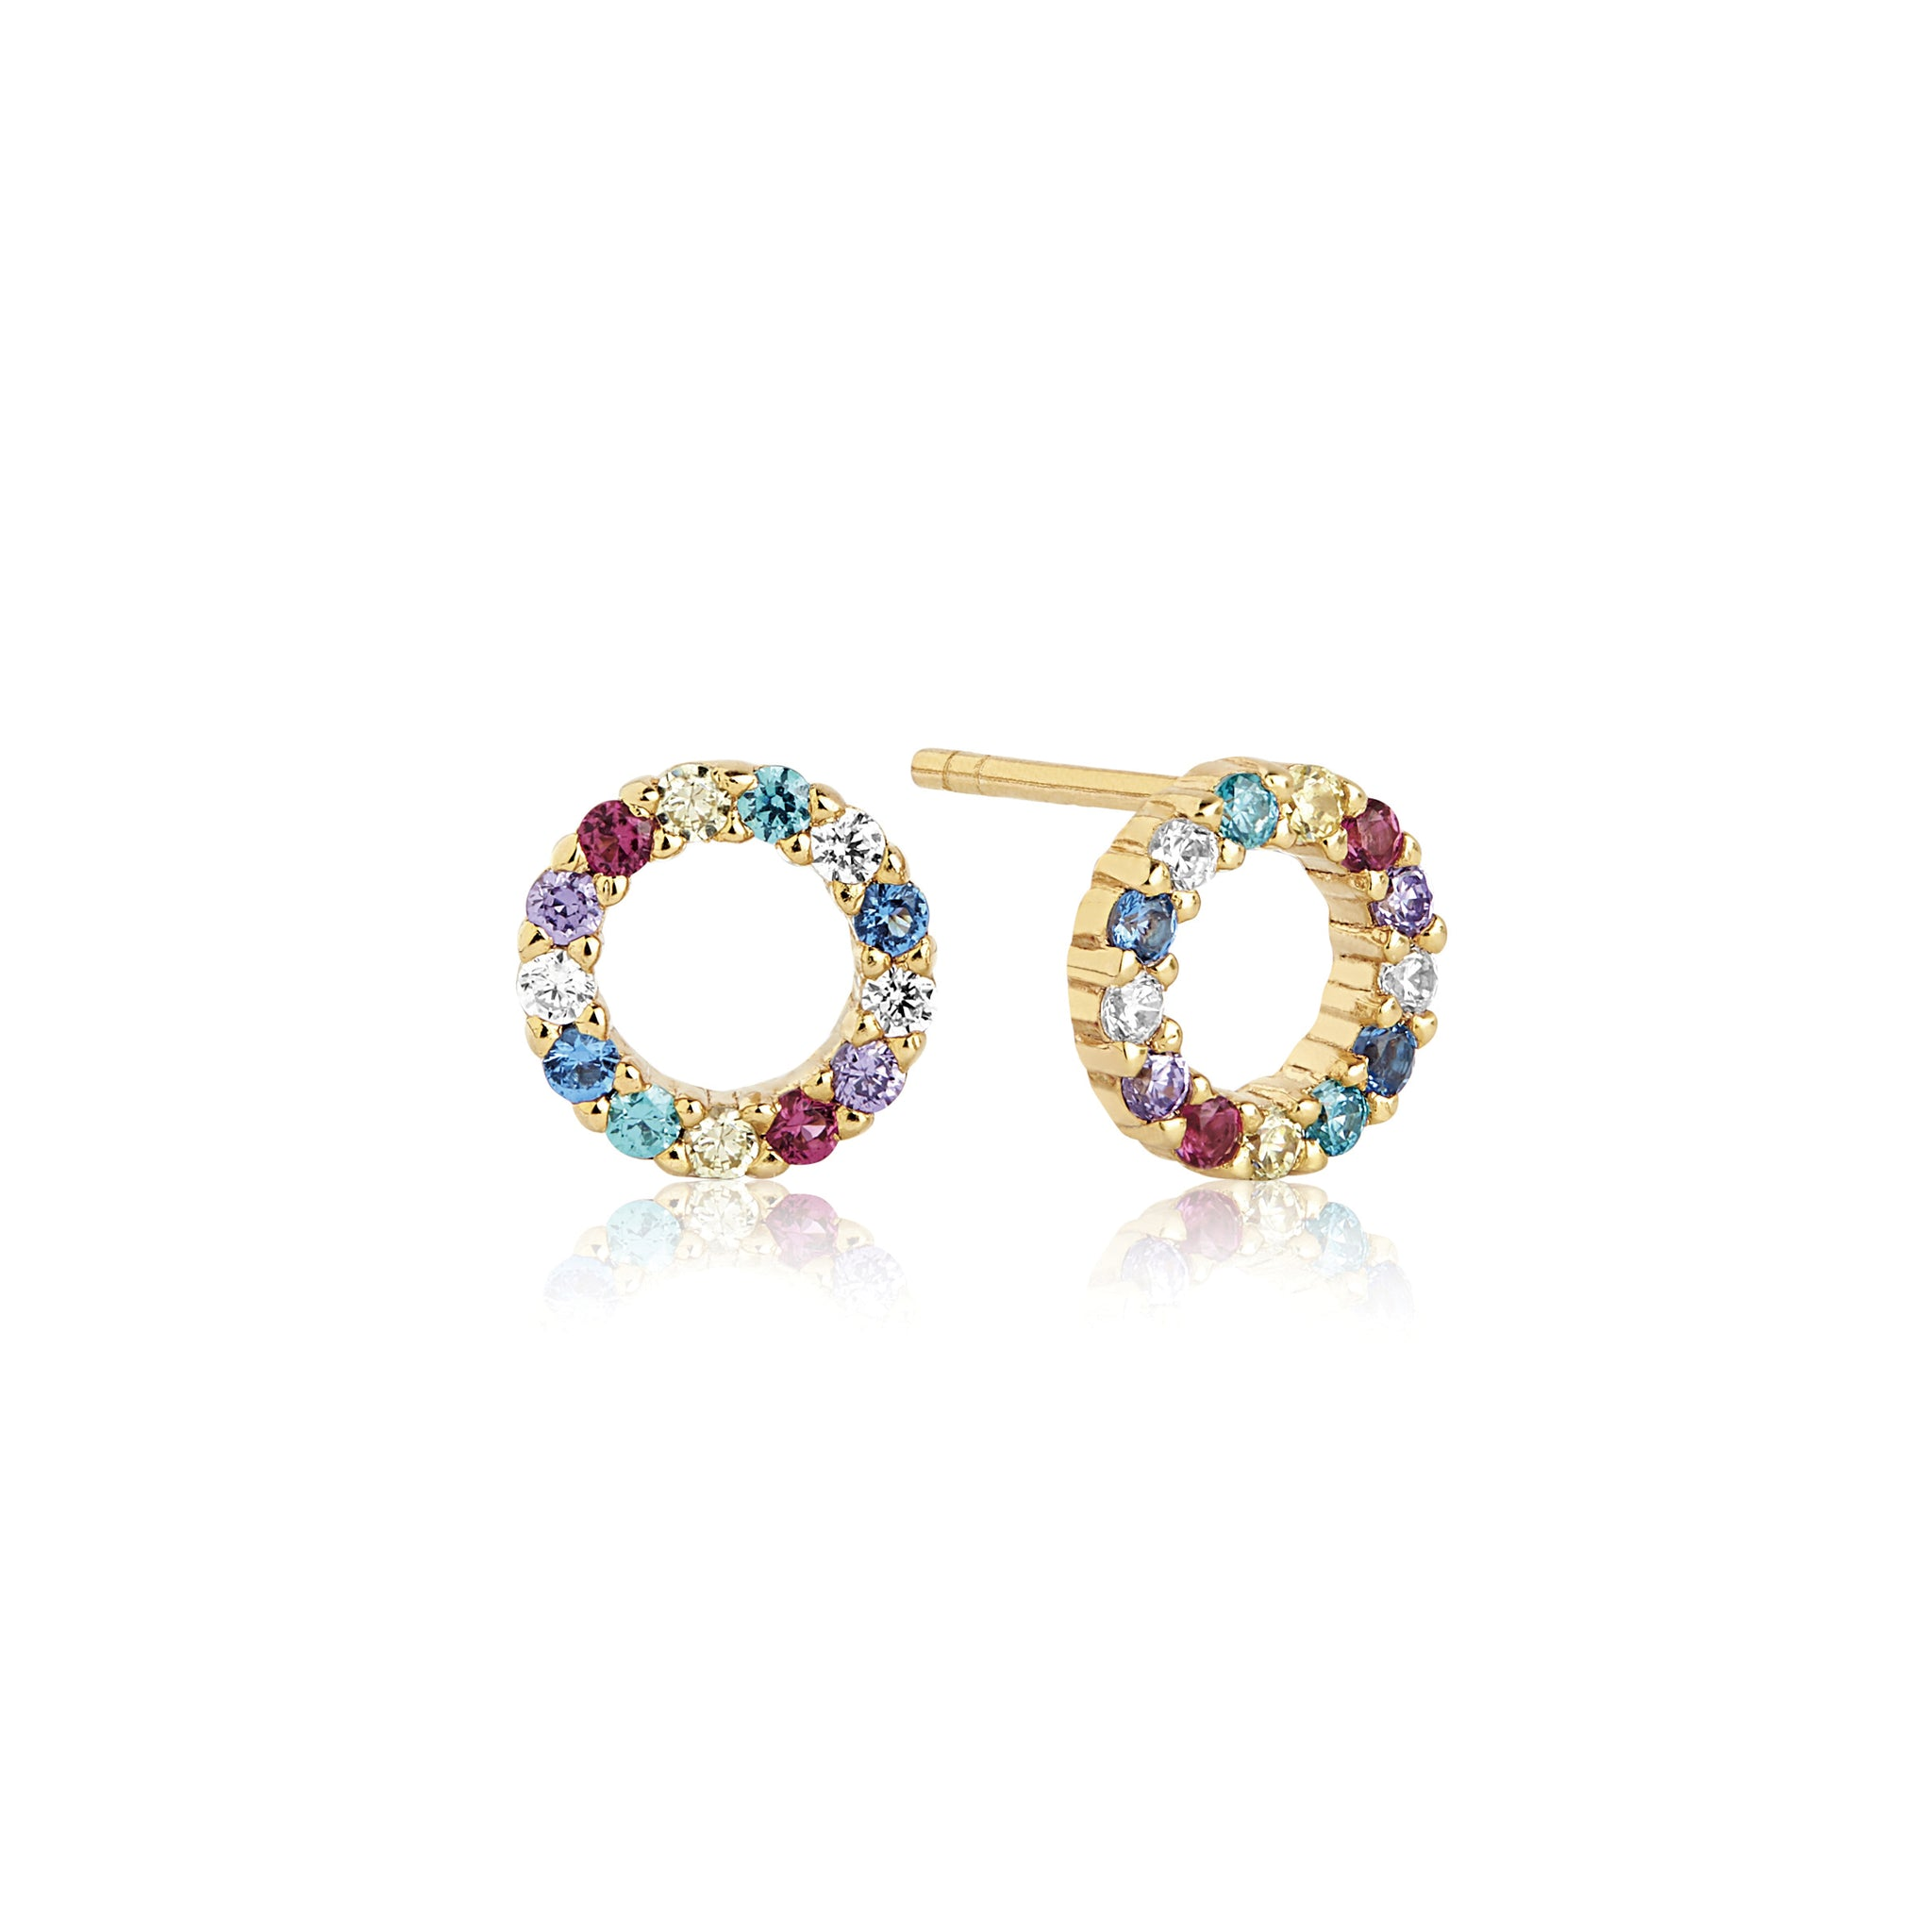 SIF JAKOBS BIELLA UNO PICCOLO EARRINGS